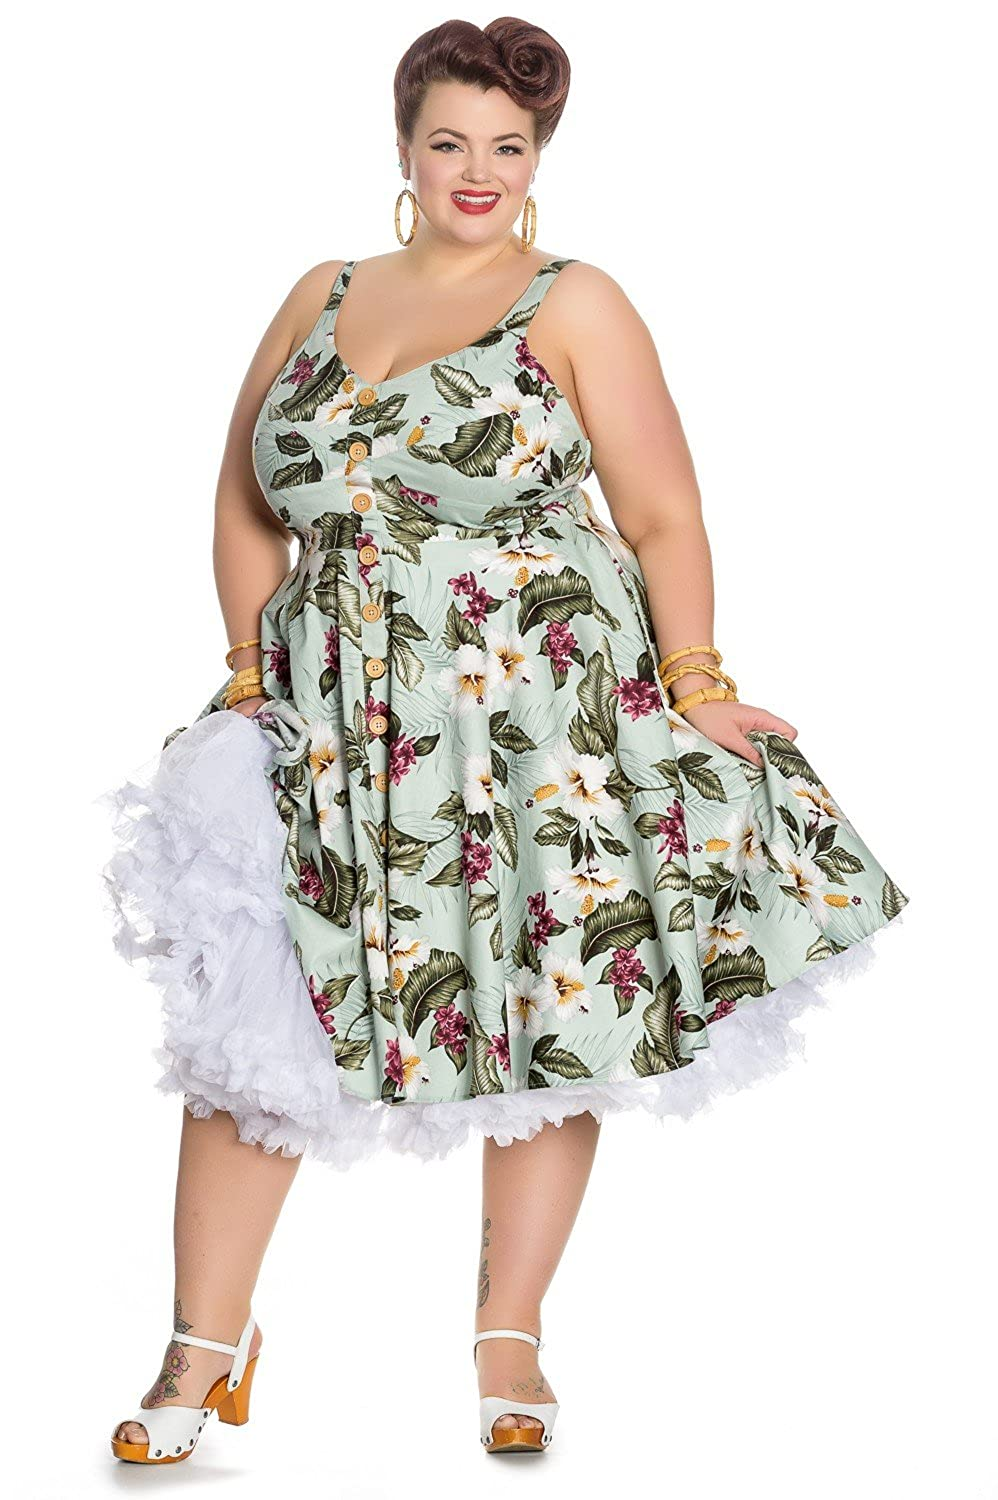 Retro Tiki Dress – Tropical, Hawaiian Dresses Hell Bunny Tahiti Tropical Floral 50s Vintage Rockabilly Flare Swing Party Dress $61.99 AT vintagedancer.com